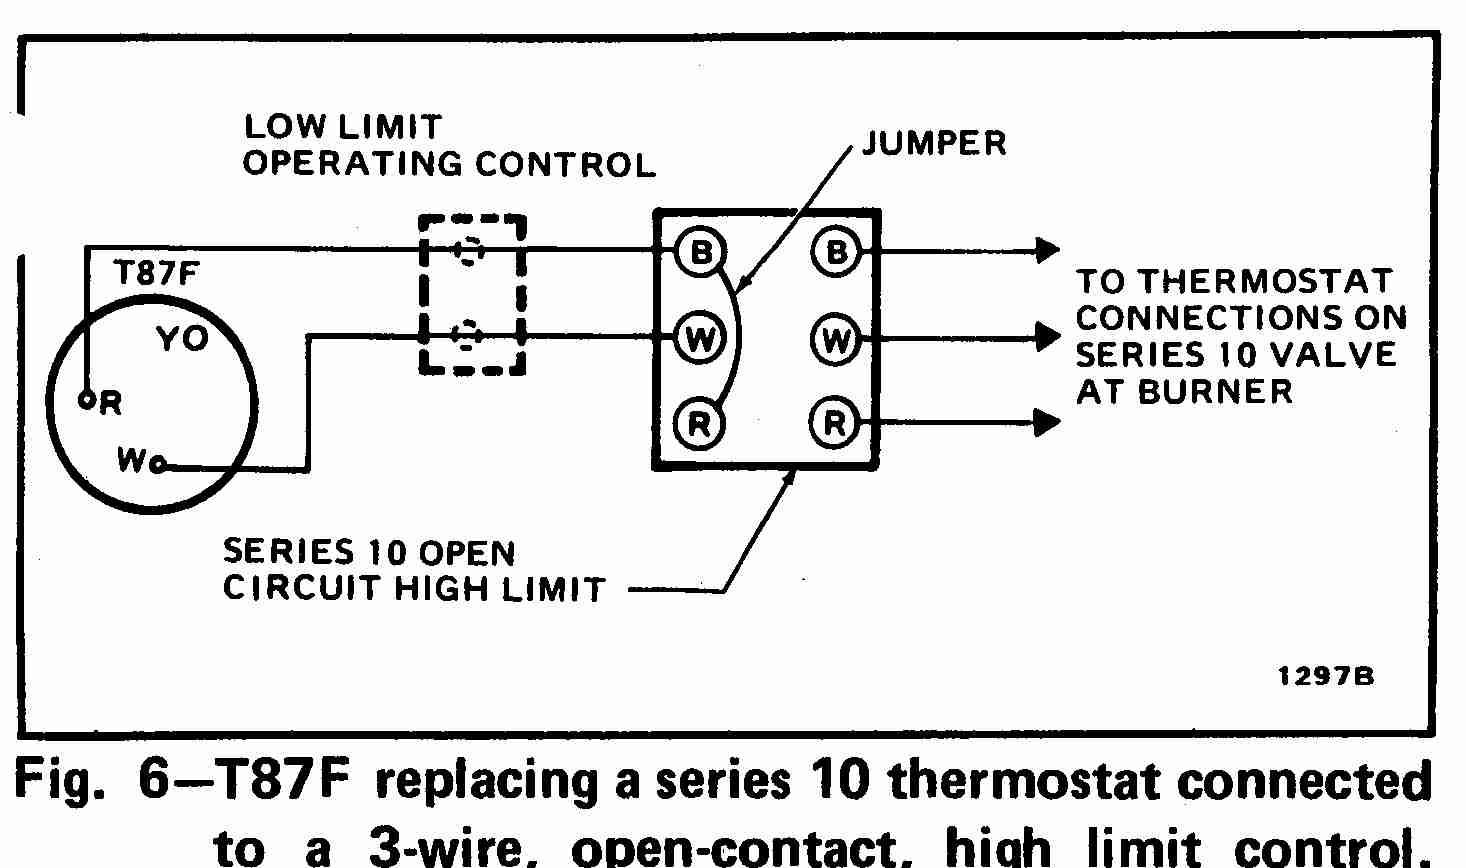 TT_T87F_0002_3WHL_DJF room thermostat wiring diagrams for hvac systems boiler control wiring diagrams at mifinder.co